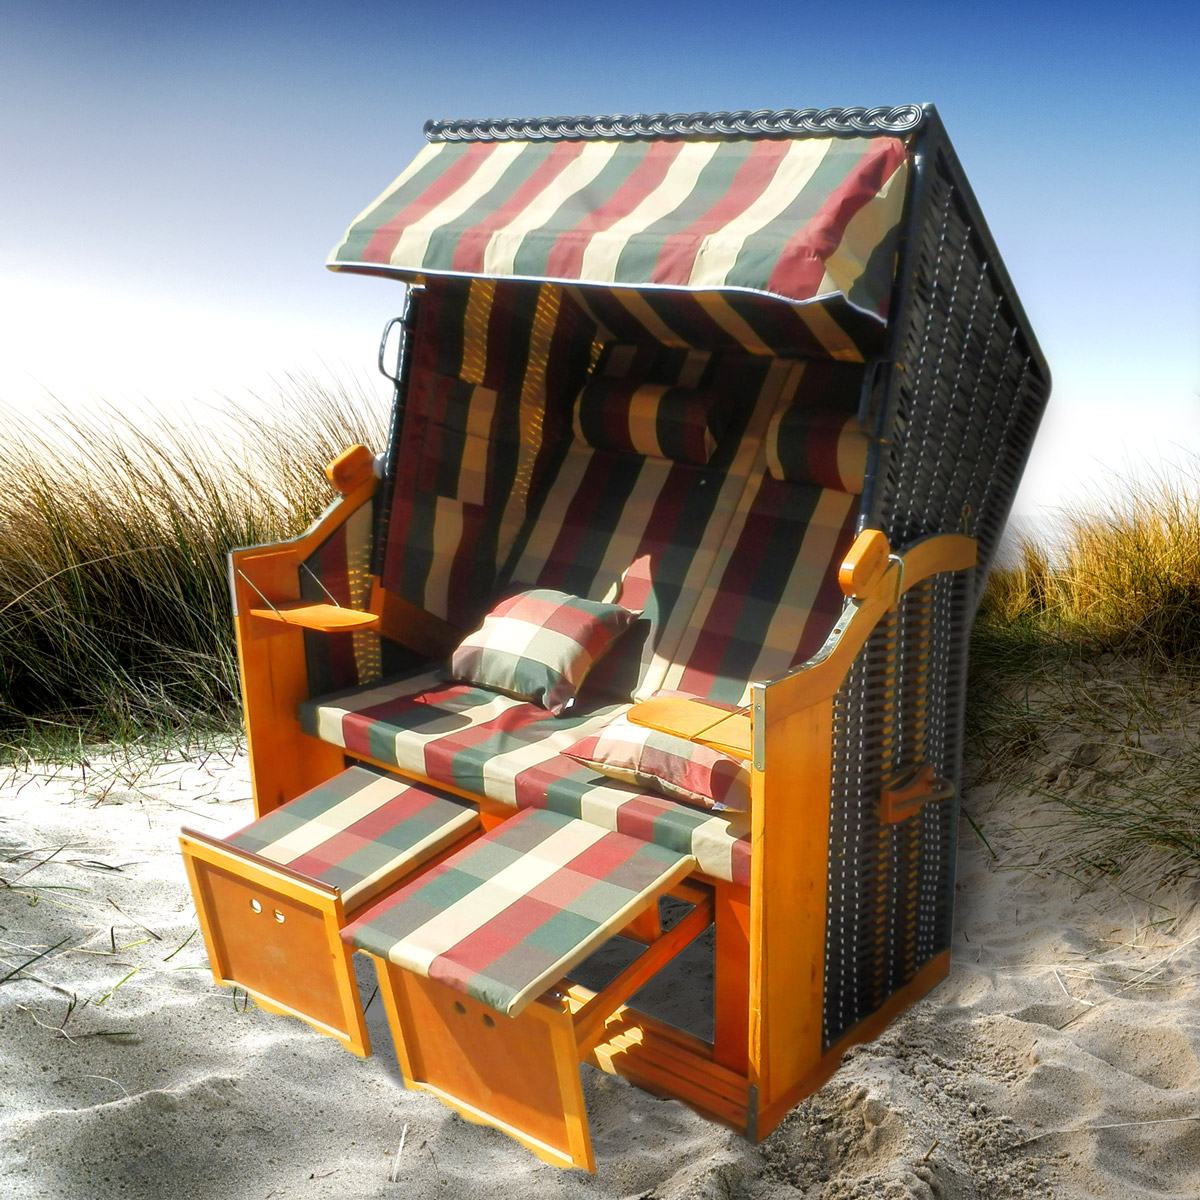 was muss man bei einem strandkorb beachten rugbyclubeemland. Black Bedroom Furniture Sets. Home Design Ideas